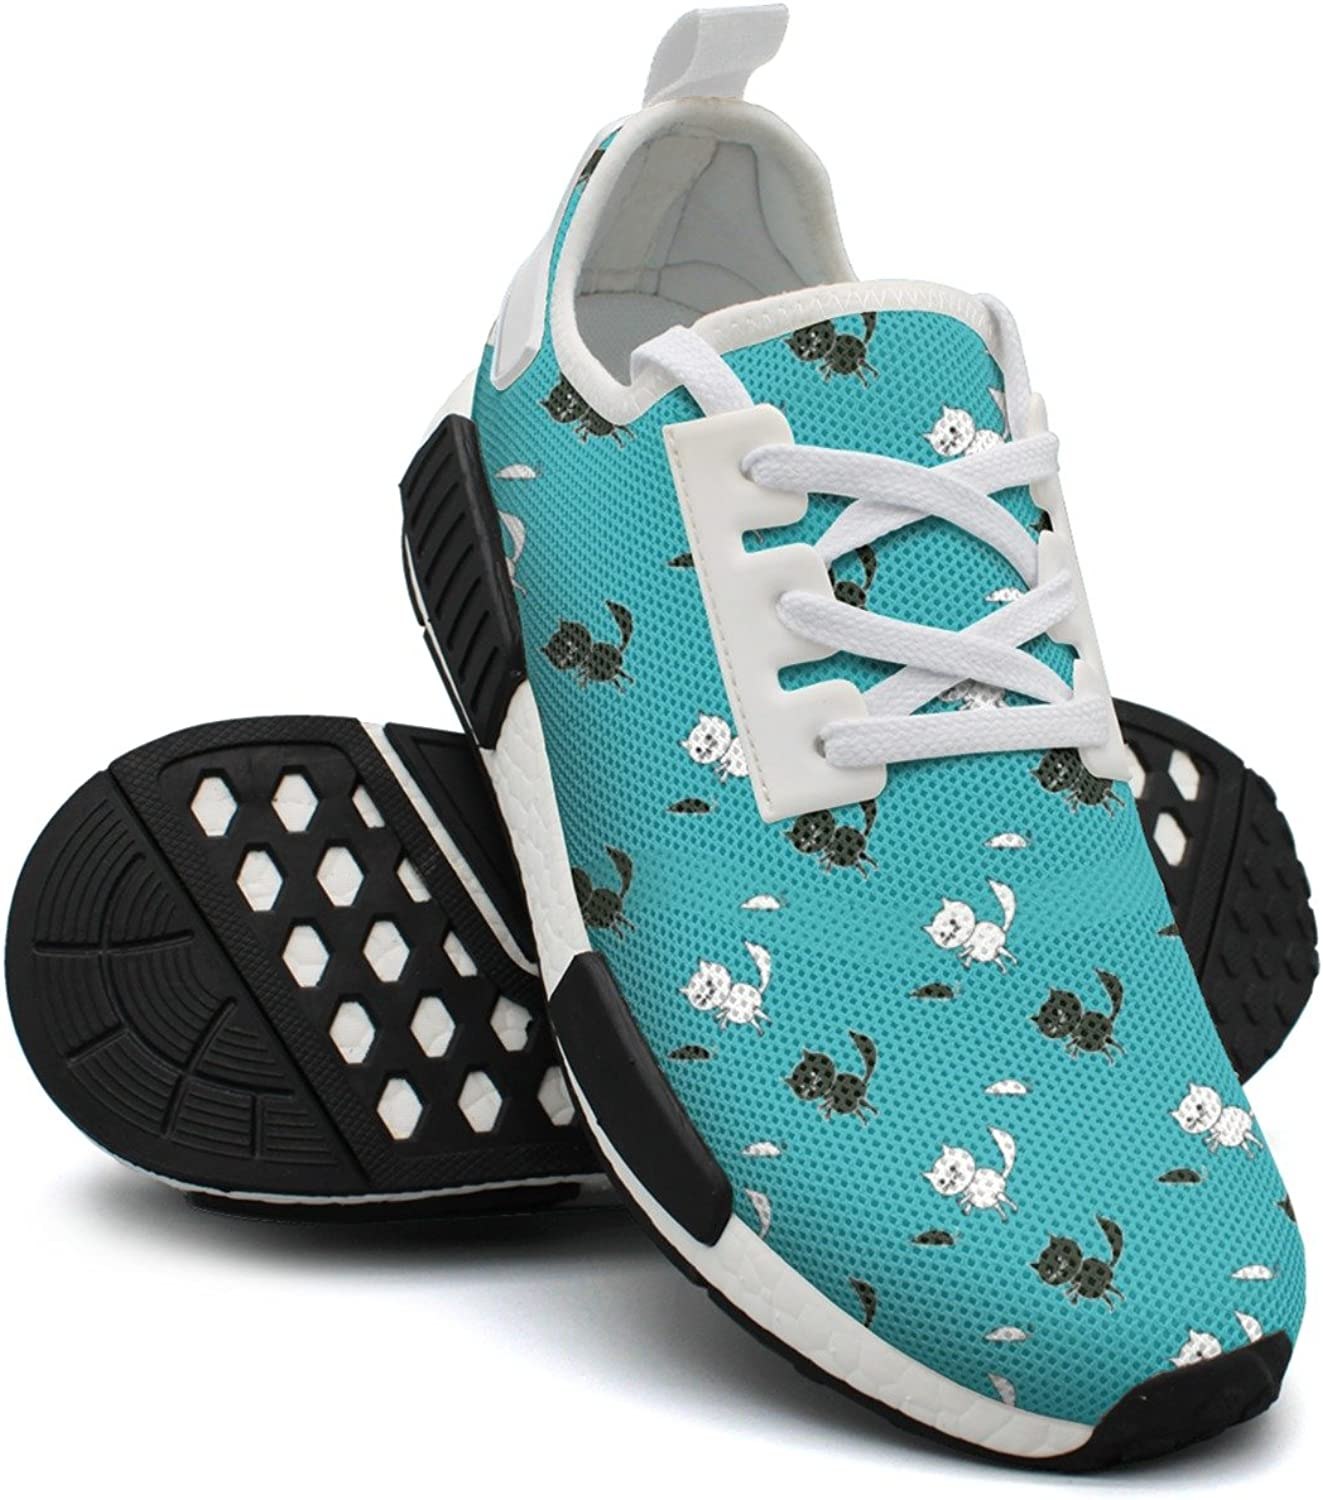 Cute Pattern with Cats and Mice Women's Designer Lightweight Sneaker Gym Outdoor Sports shoes